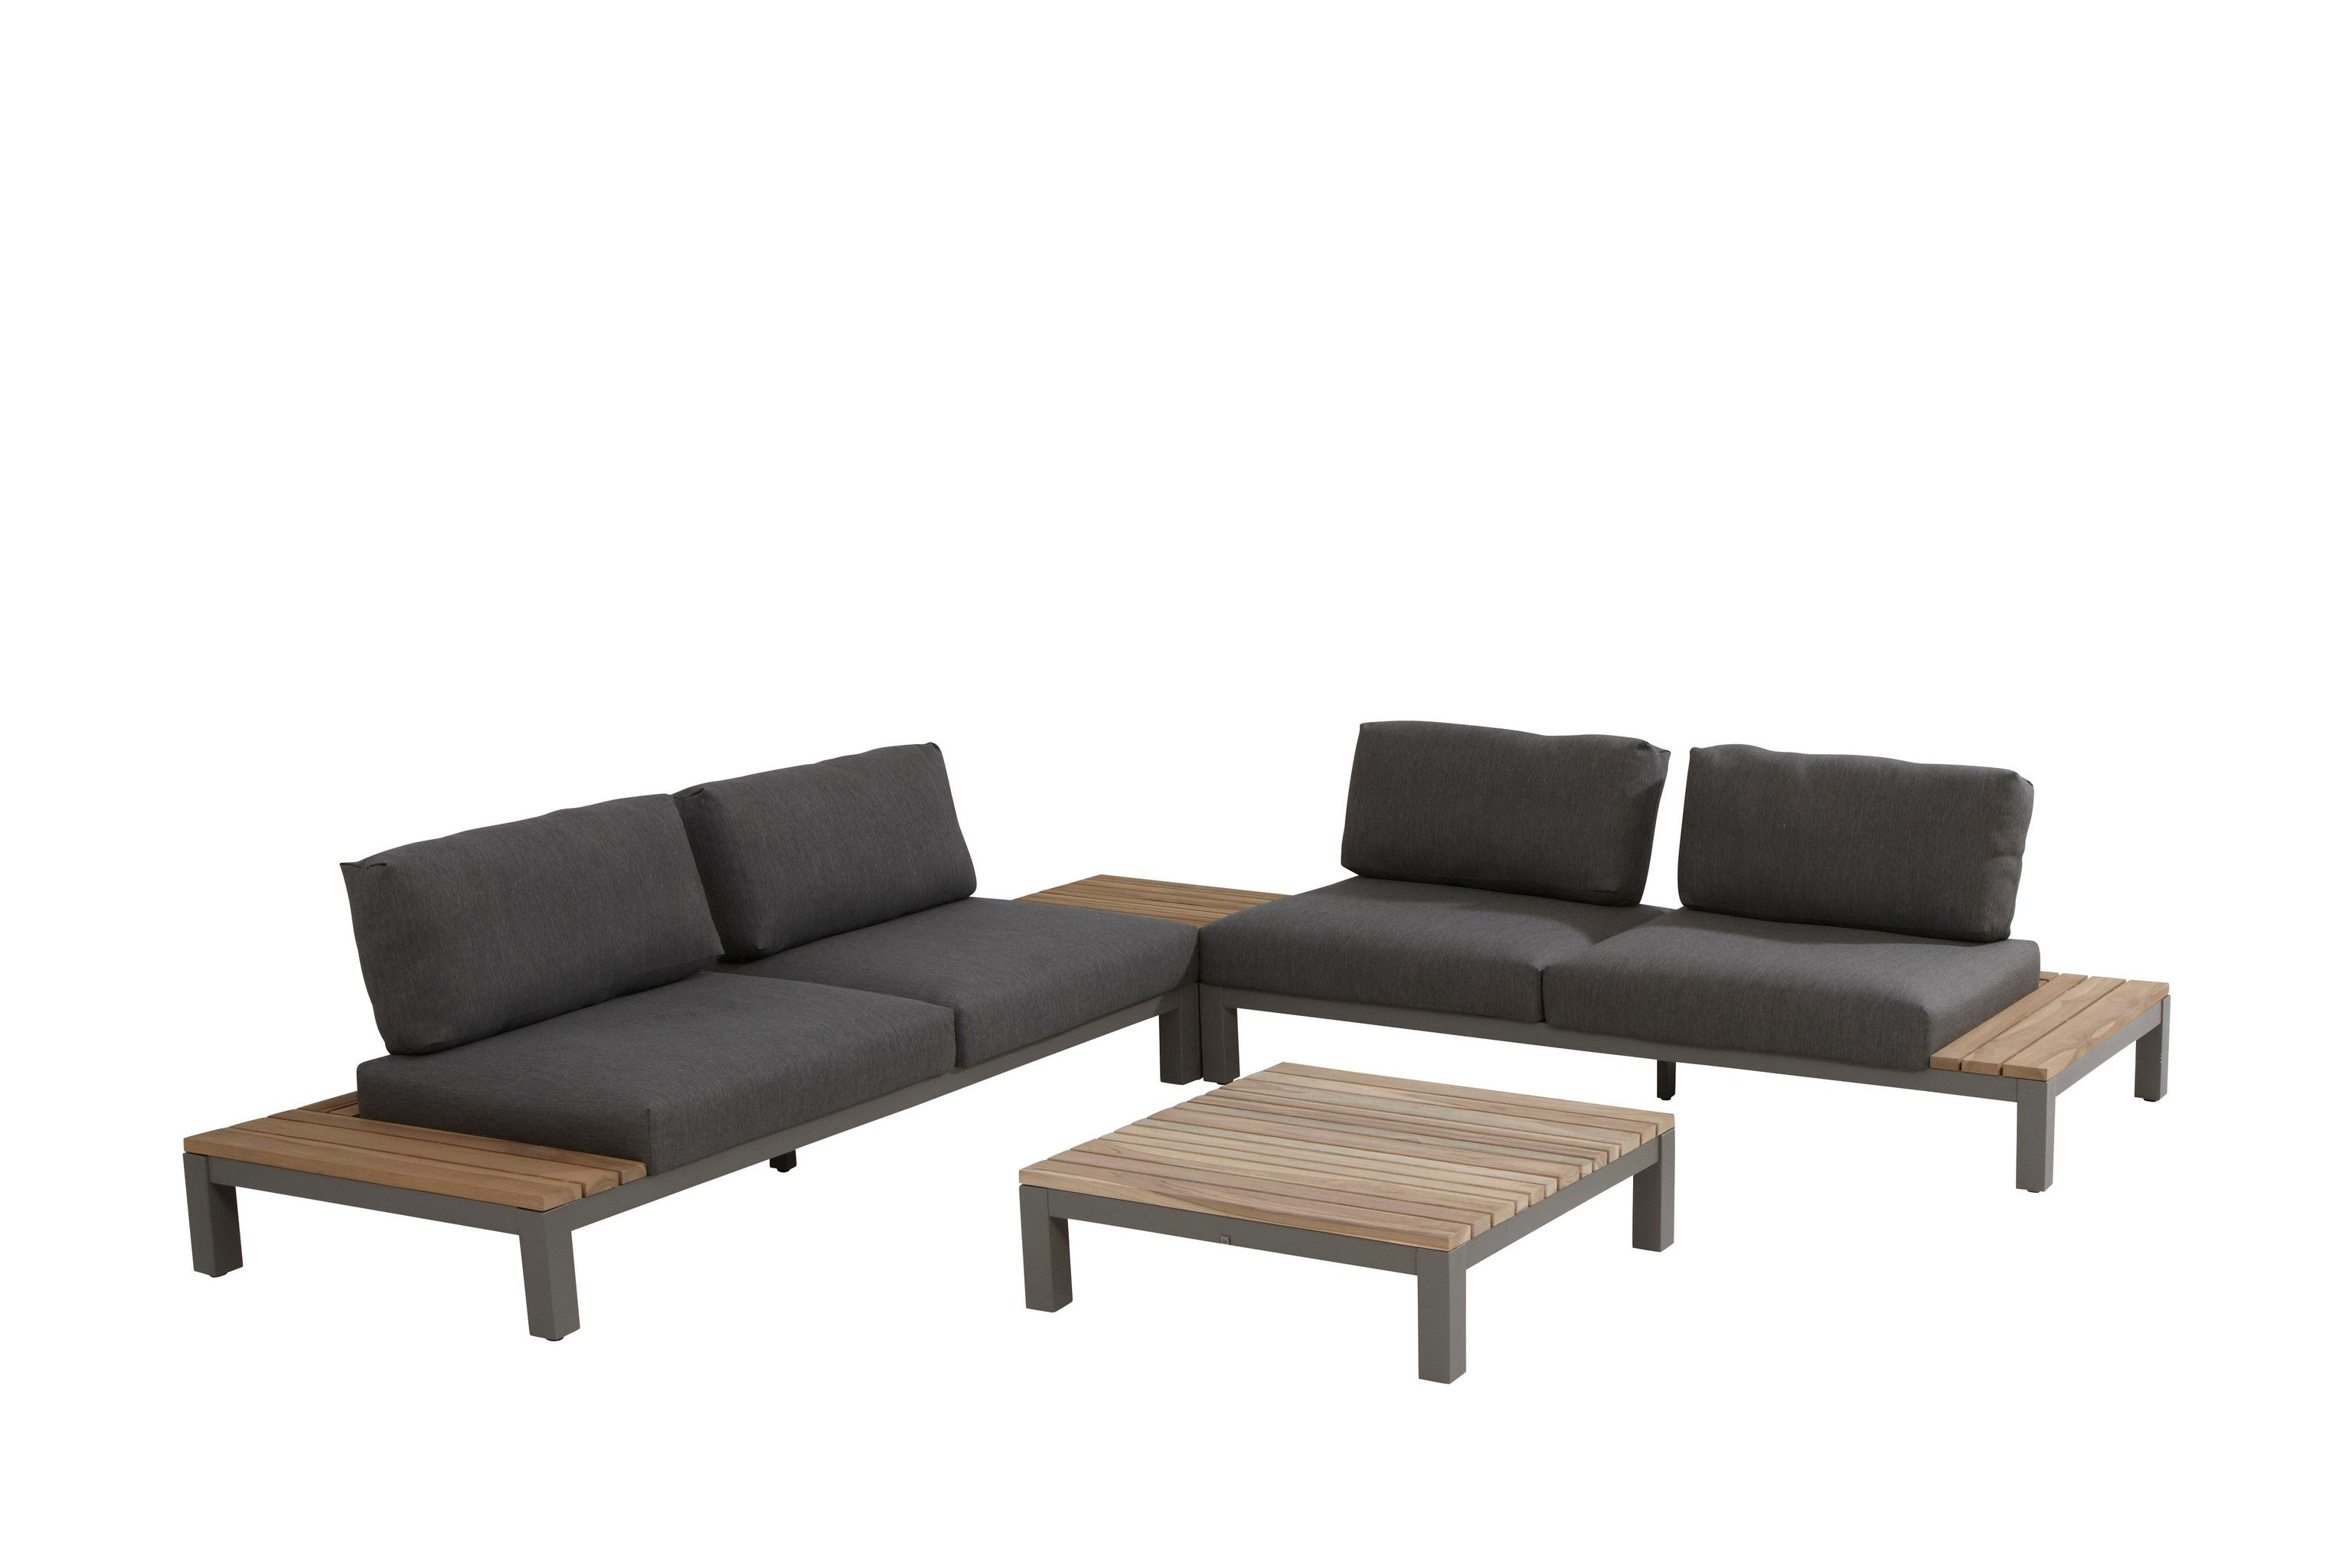 Image of 4 Seasons Outdoor Fidji Corner Set